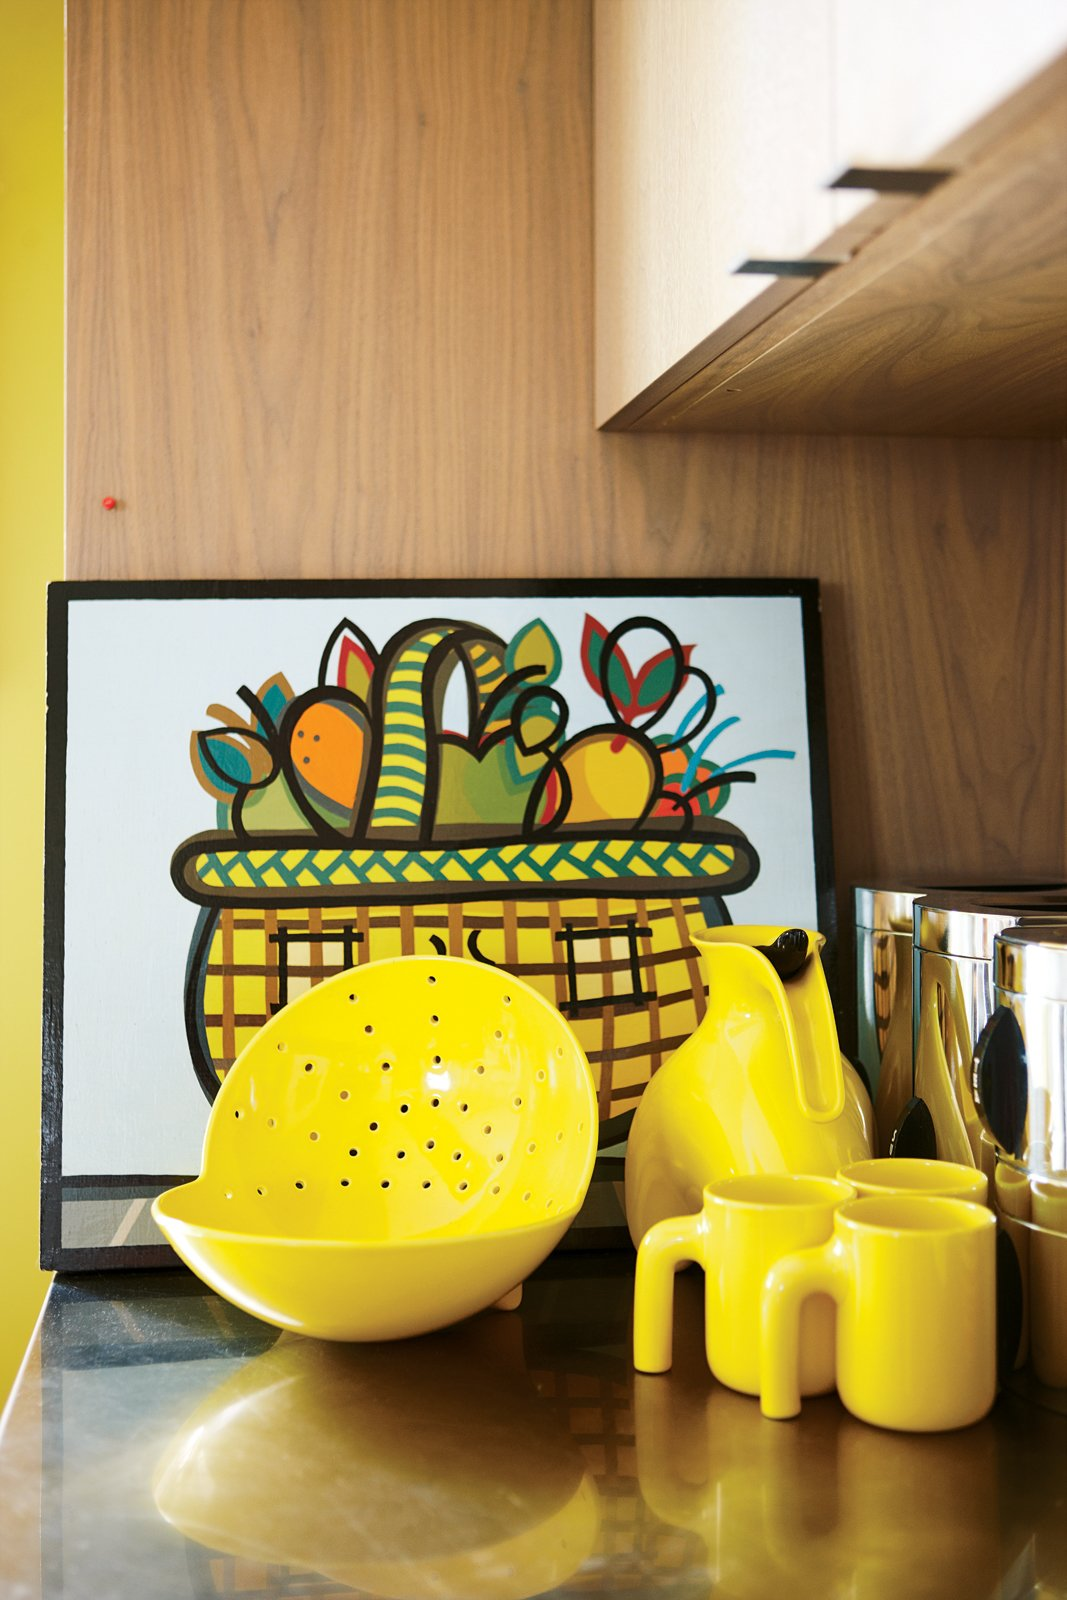 Kitchen and Wood Backsplashe Shopping Mall Fruit Basket, a painting by Peter B. Hastings, shares space with a special-edition Royal Copenhagen tea set and a photograph by Tokyo-based artist Keith Ng.  Best Photos from Party-Friendly Apartment in Toronto